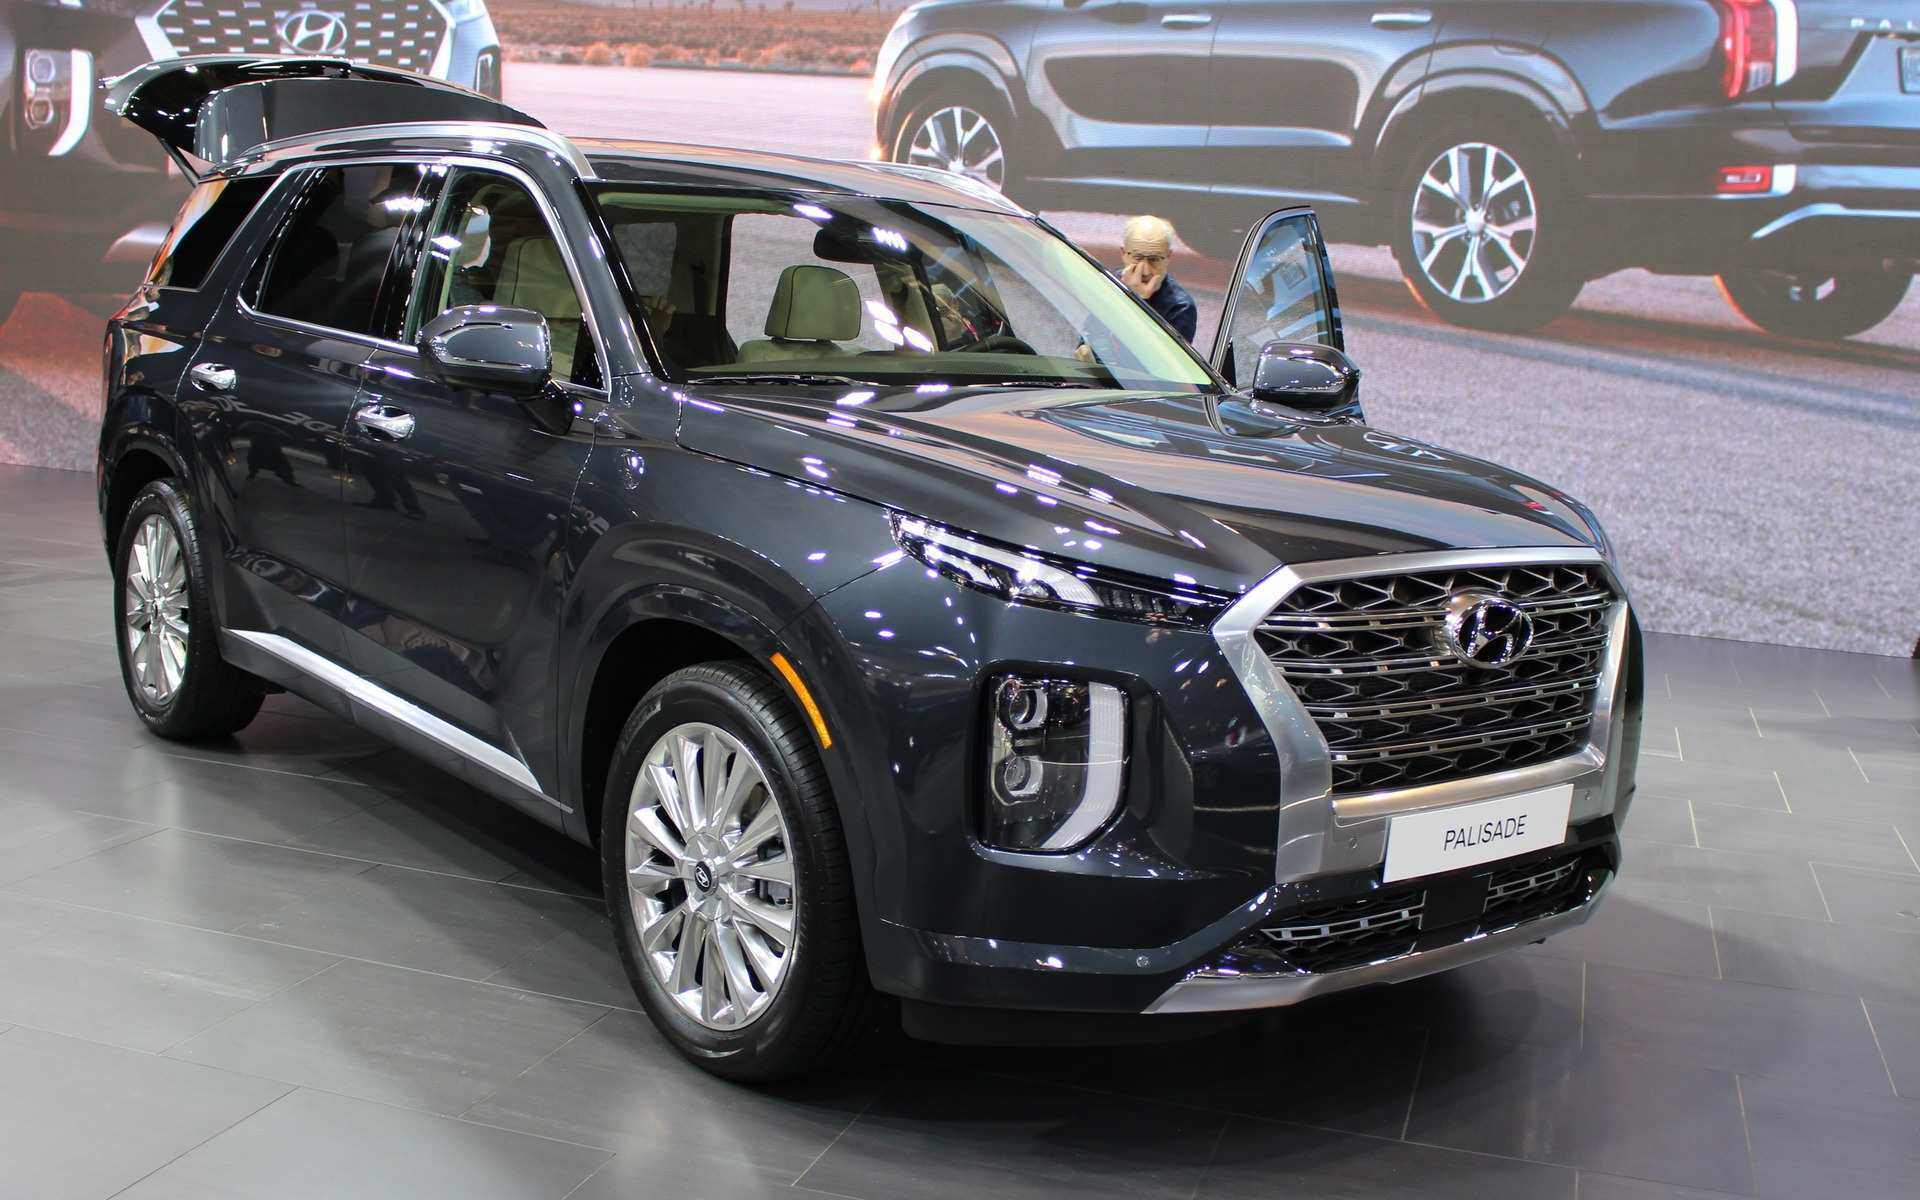 25 All New 2020 Hyundai Palisade Trim Levels Reviews by 2020 Hyundai Palisade Trim Levels